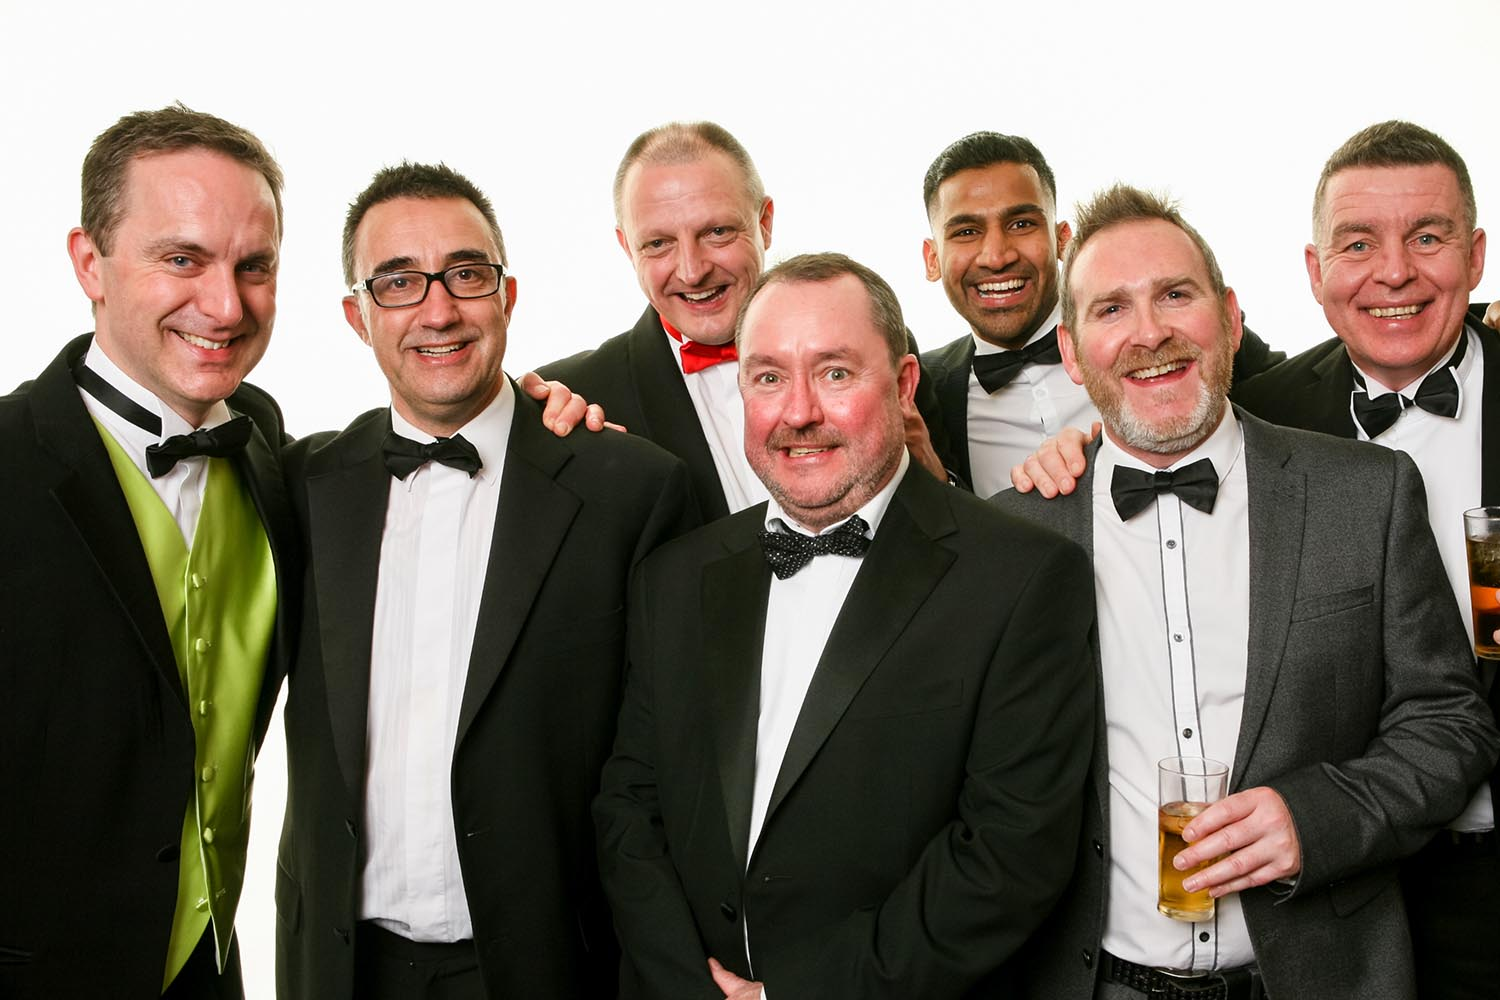 Corporate Awards Photography Bristol